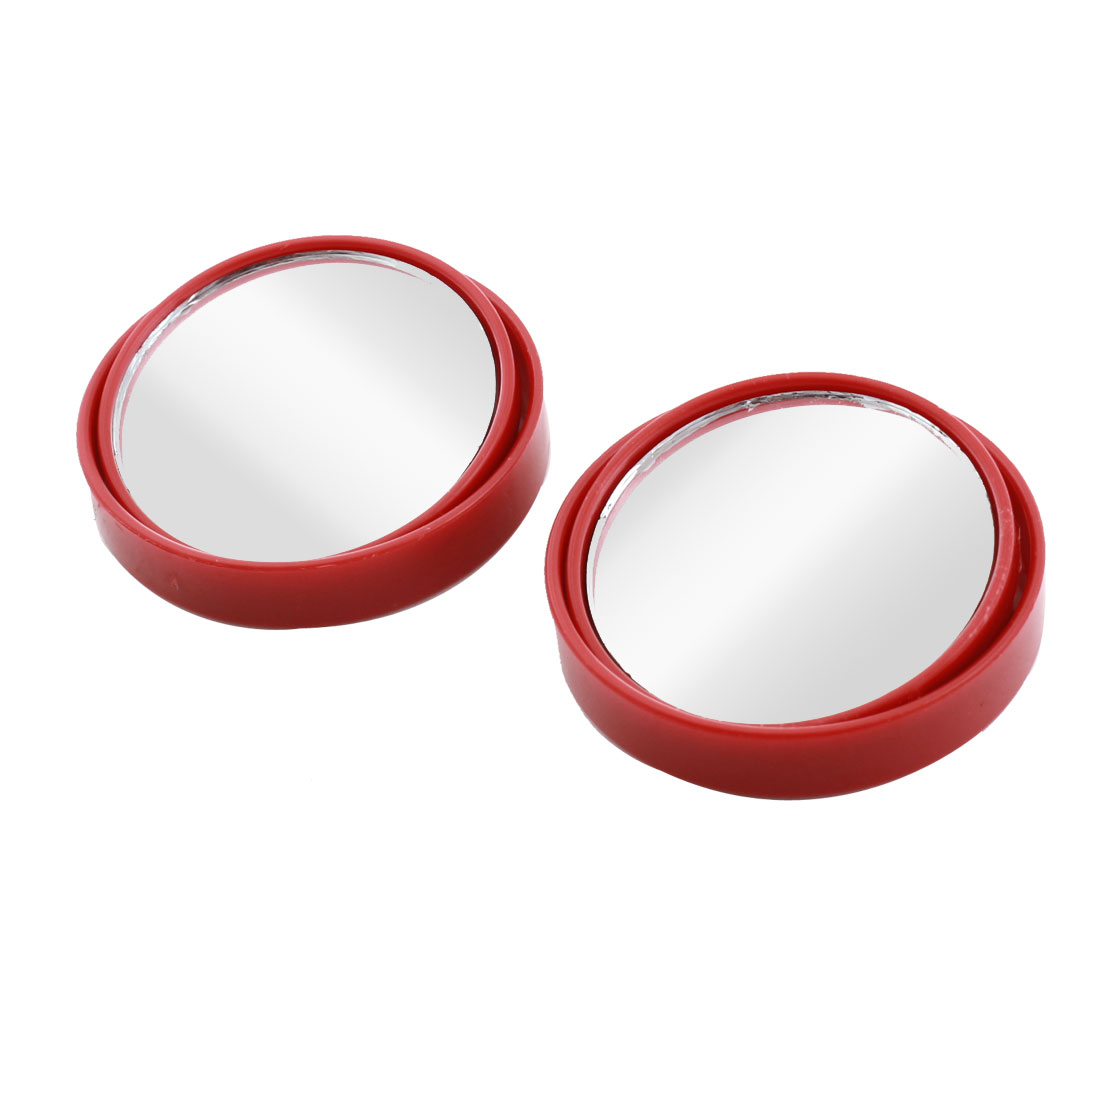 "Car Red Wide Angle Round Convex Rearview Blind Spot Mirror 2"" 2pcs"